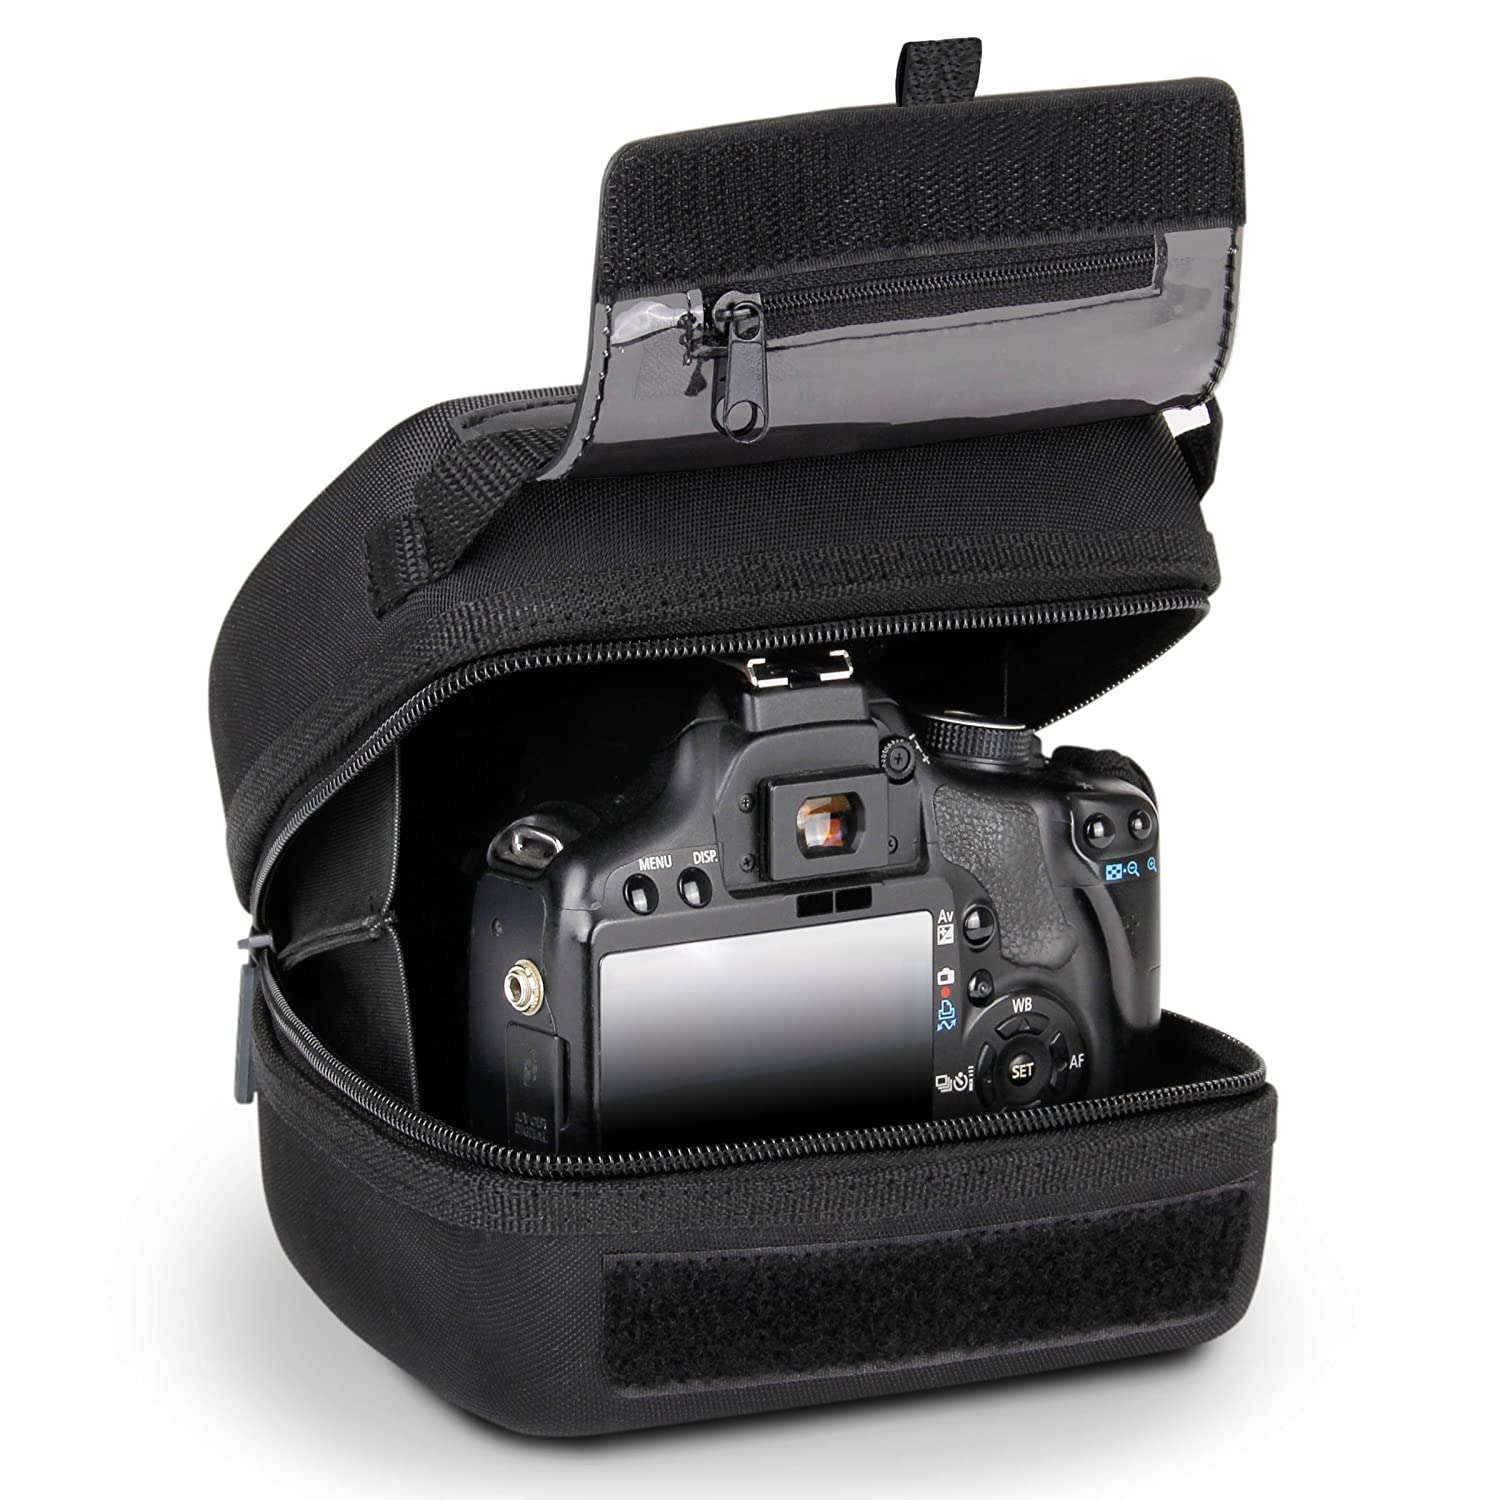 USA GEAR Quick Access DSLR Hard Shell Camera Case (Black) with Molded EVA  Protection a4a231b493943